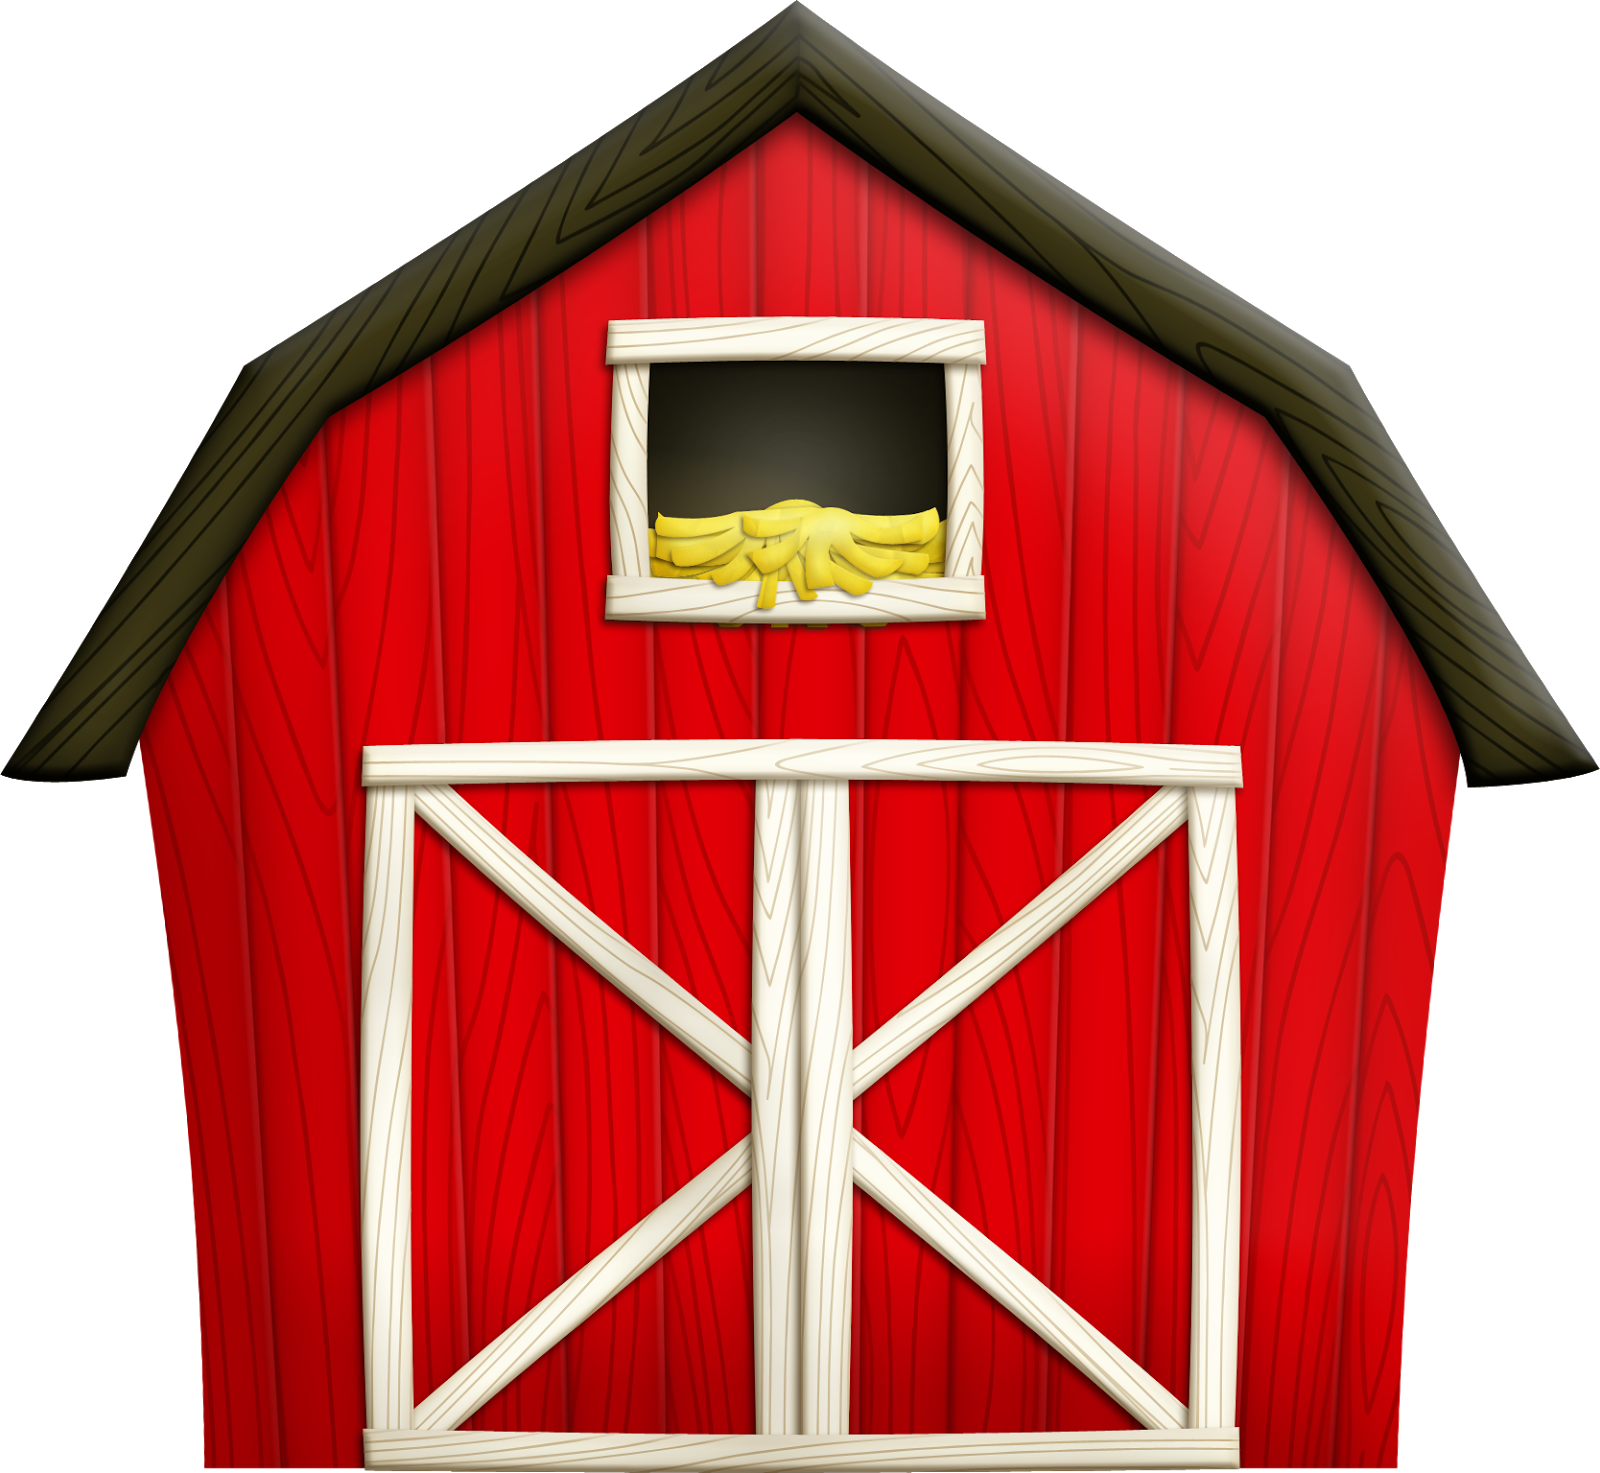 Farmhouse clipart big red barn. Digital scrapbook make yourself